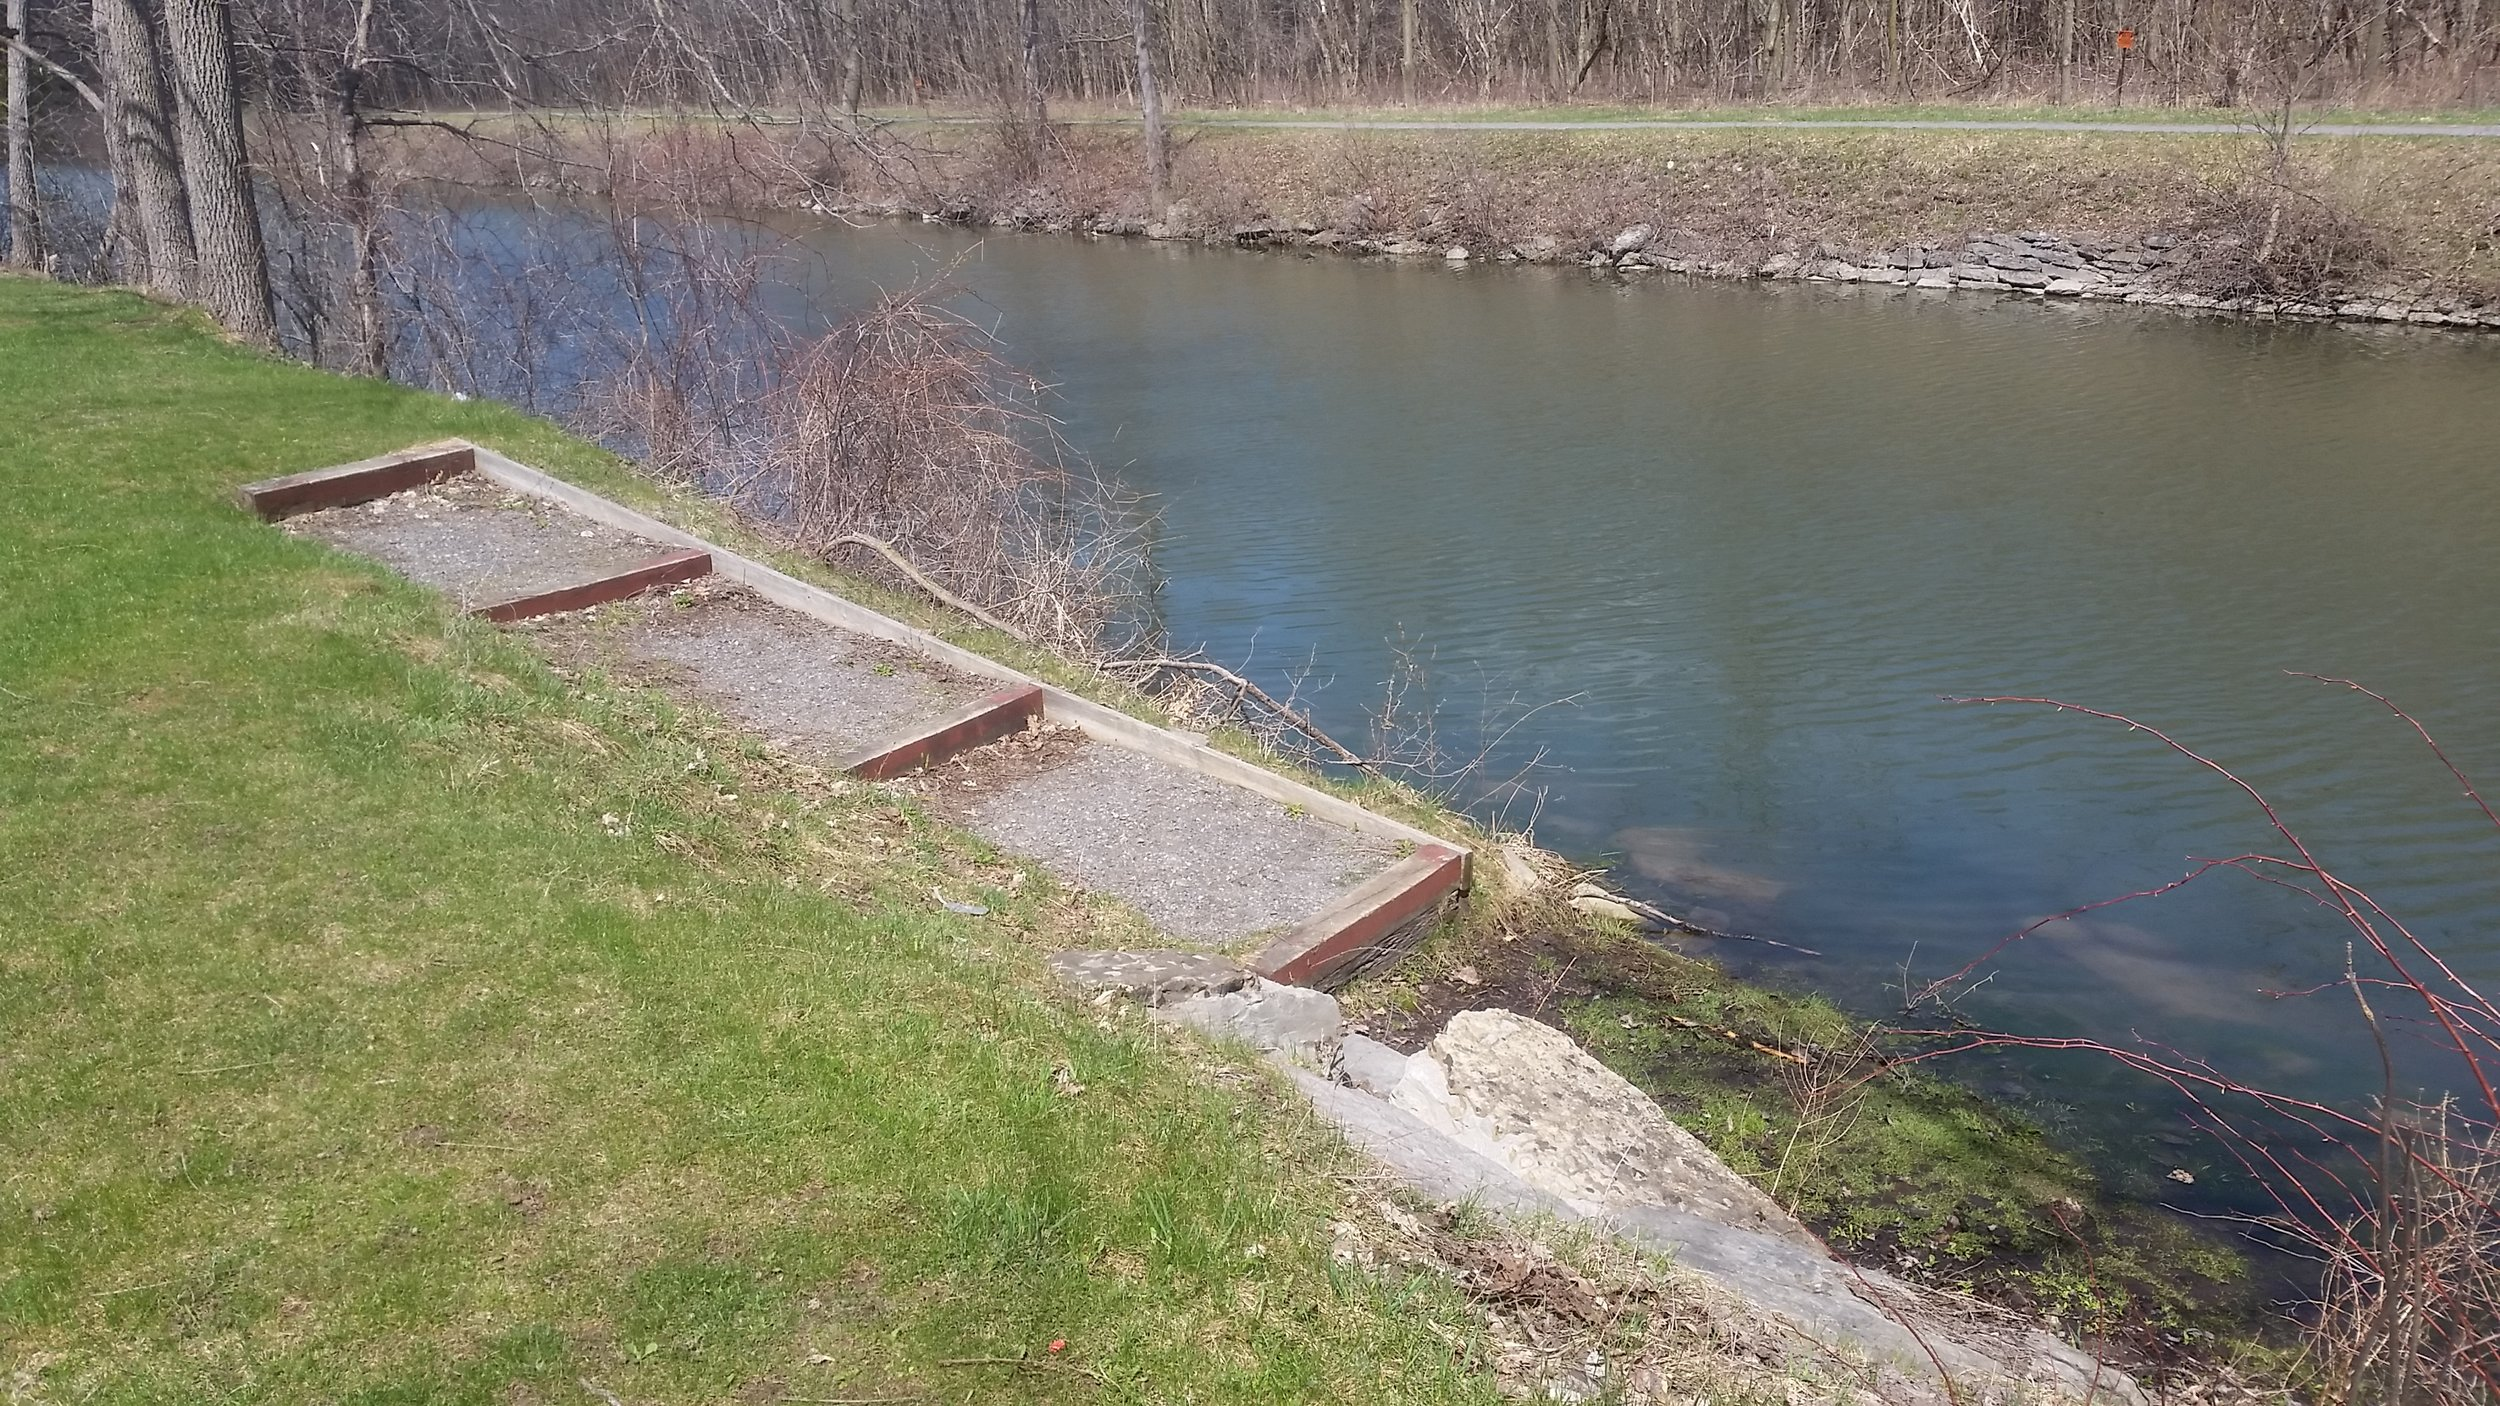 a second boat launch location is available at community recognition park about .4 miles east of the museum at the corner of pottery road and legion drive